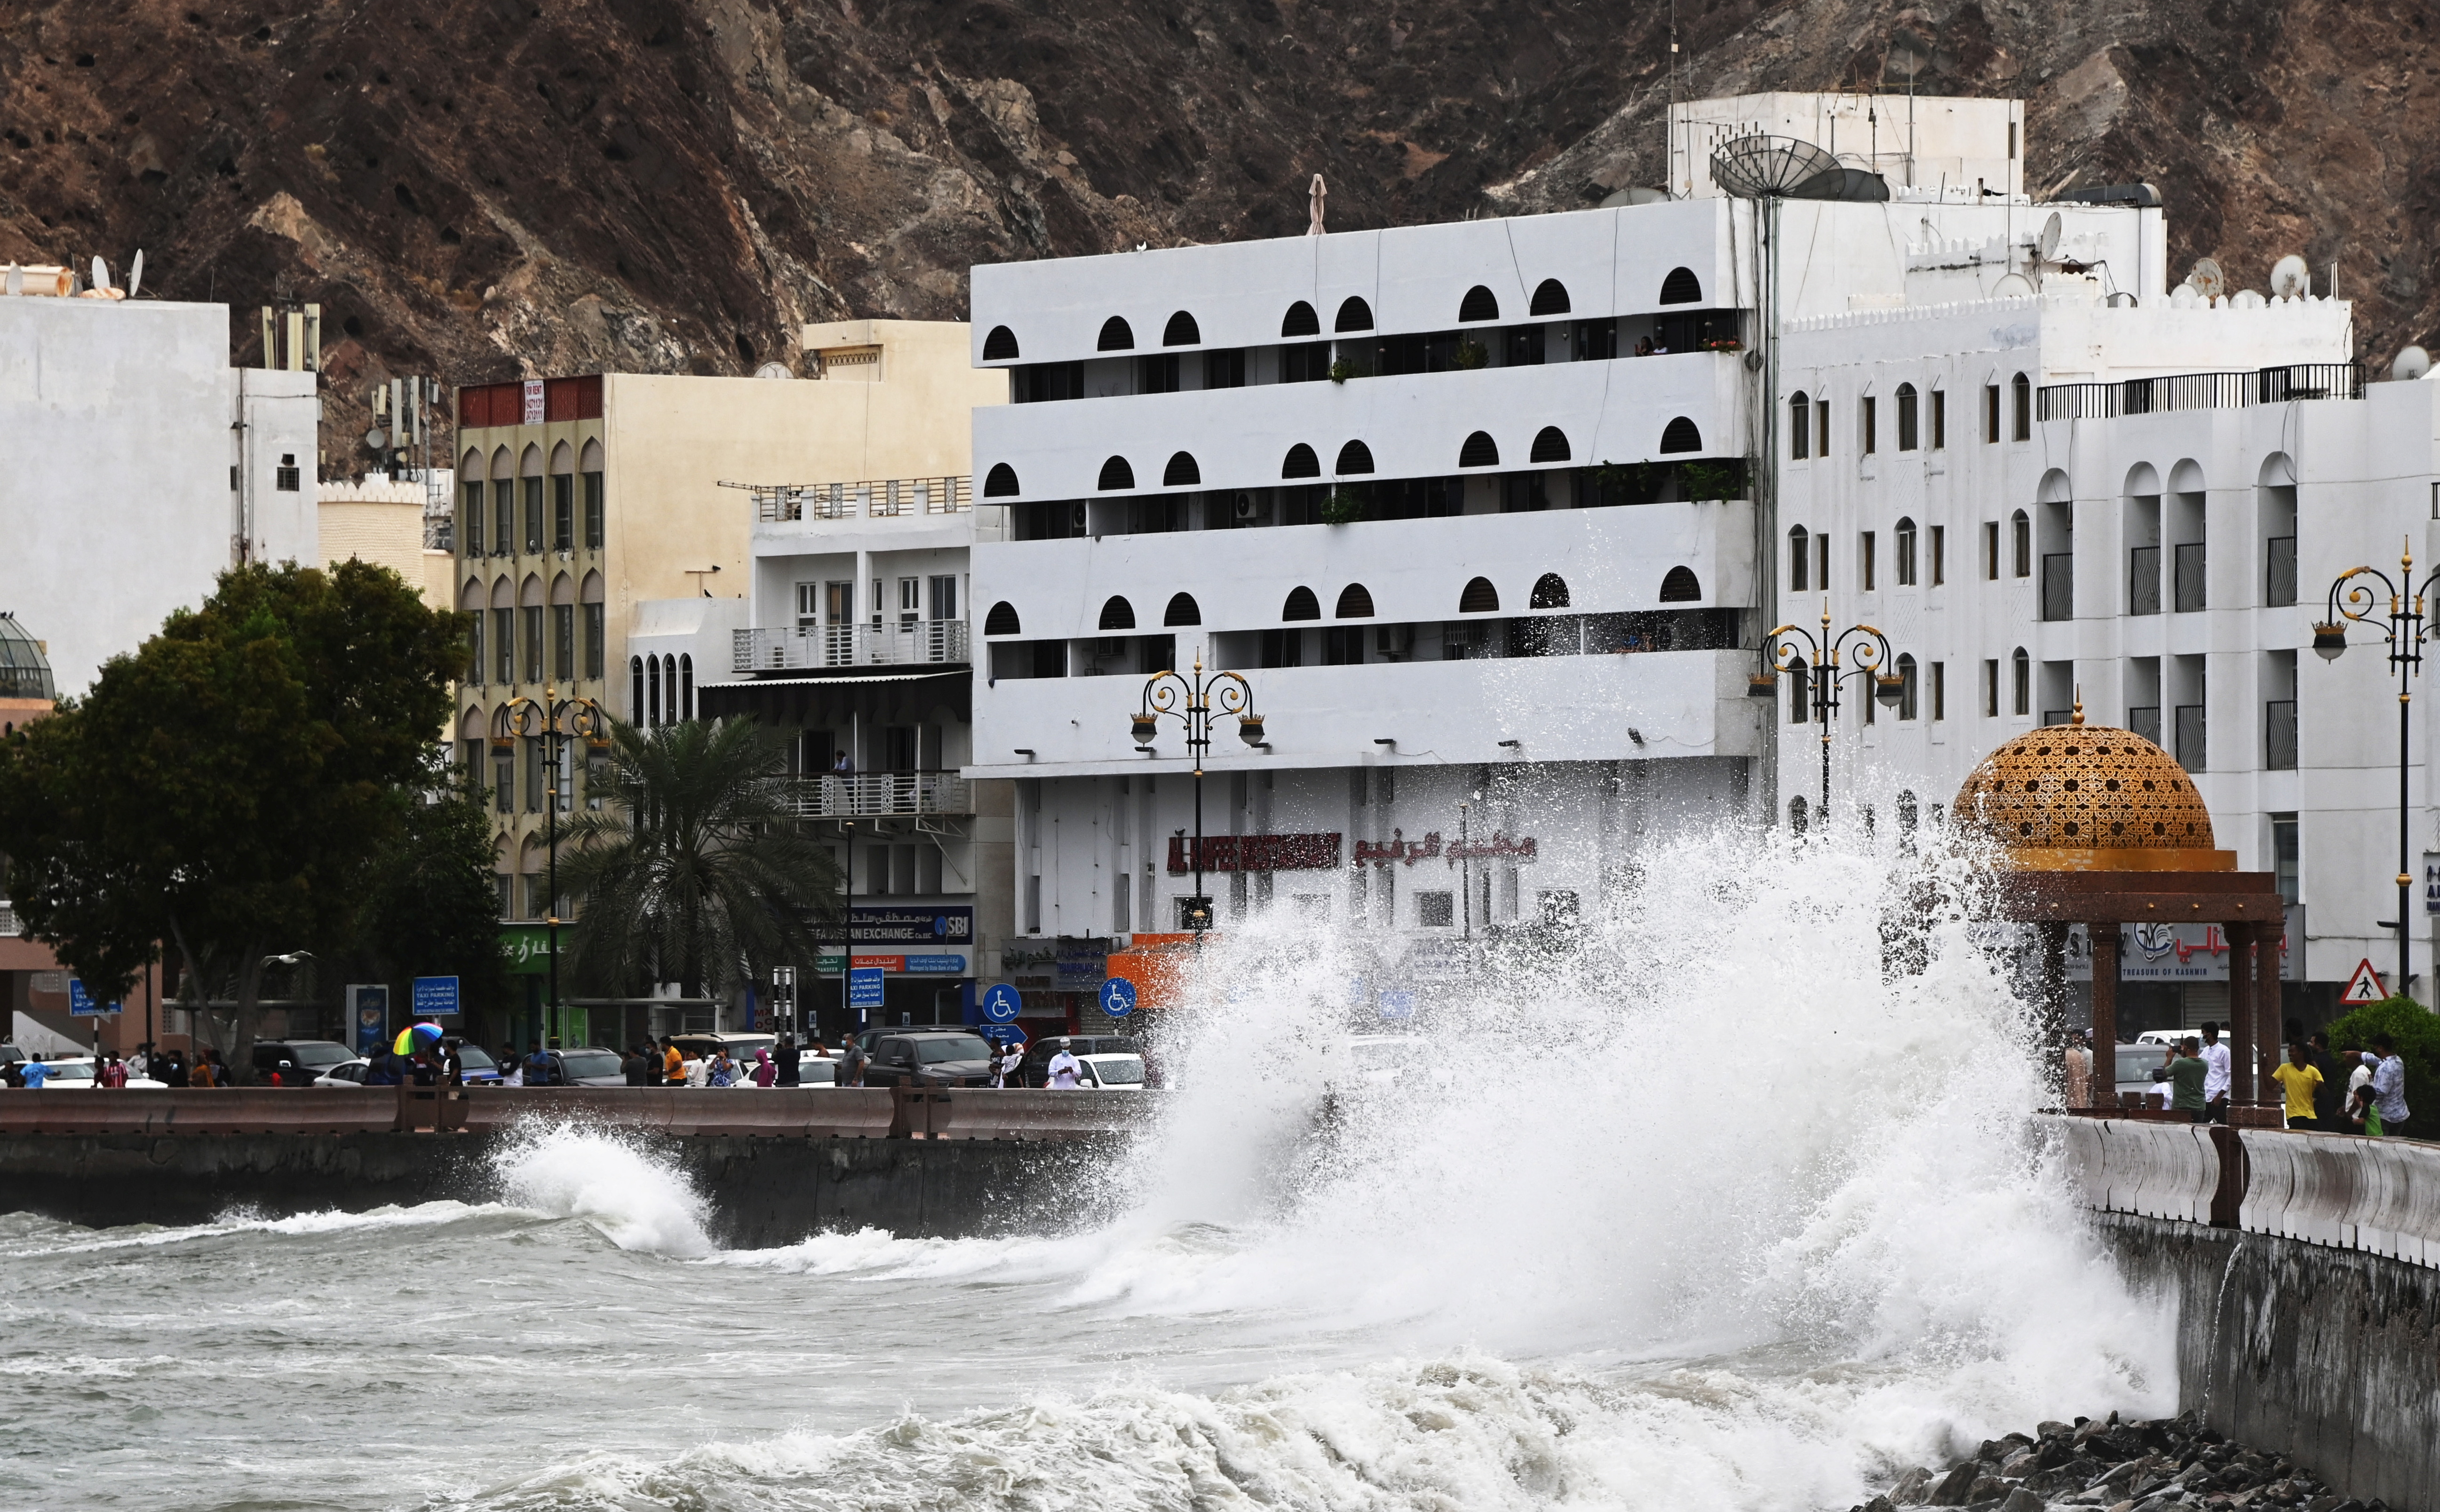 Strong waves hit the shore as Cyclone Shaheen makes landfall in Muscat Oman, October 2, 2021. Picture taken October 2, 2021. REUTERS/Sultan Al Hassani